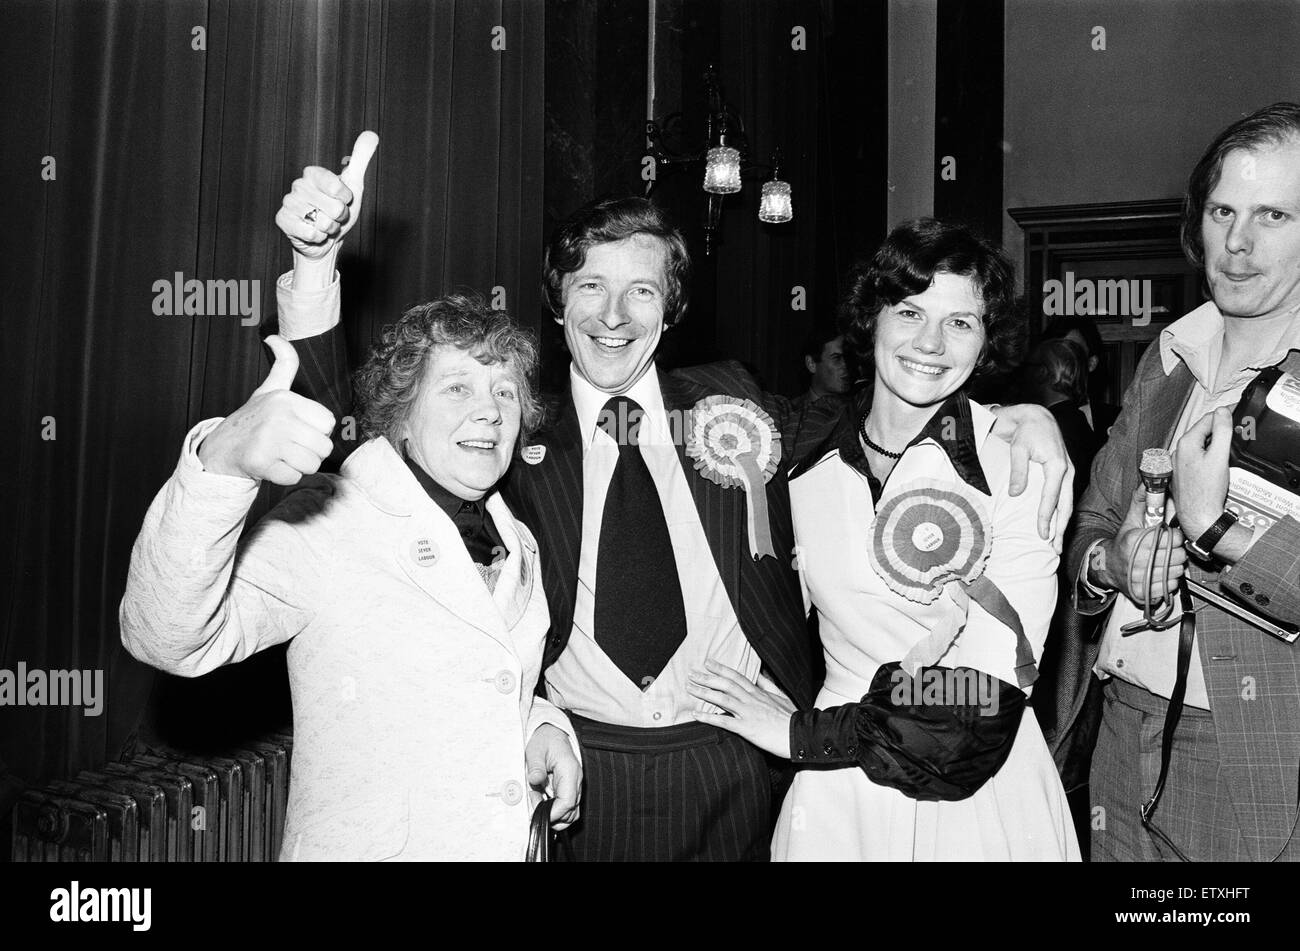 Ladywood, Birmingham, By-election, 18th August 1977.  Declaration, John Sever, Labour wins with 8,227 votes. Anthony - Stock Image